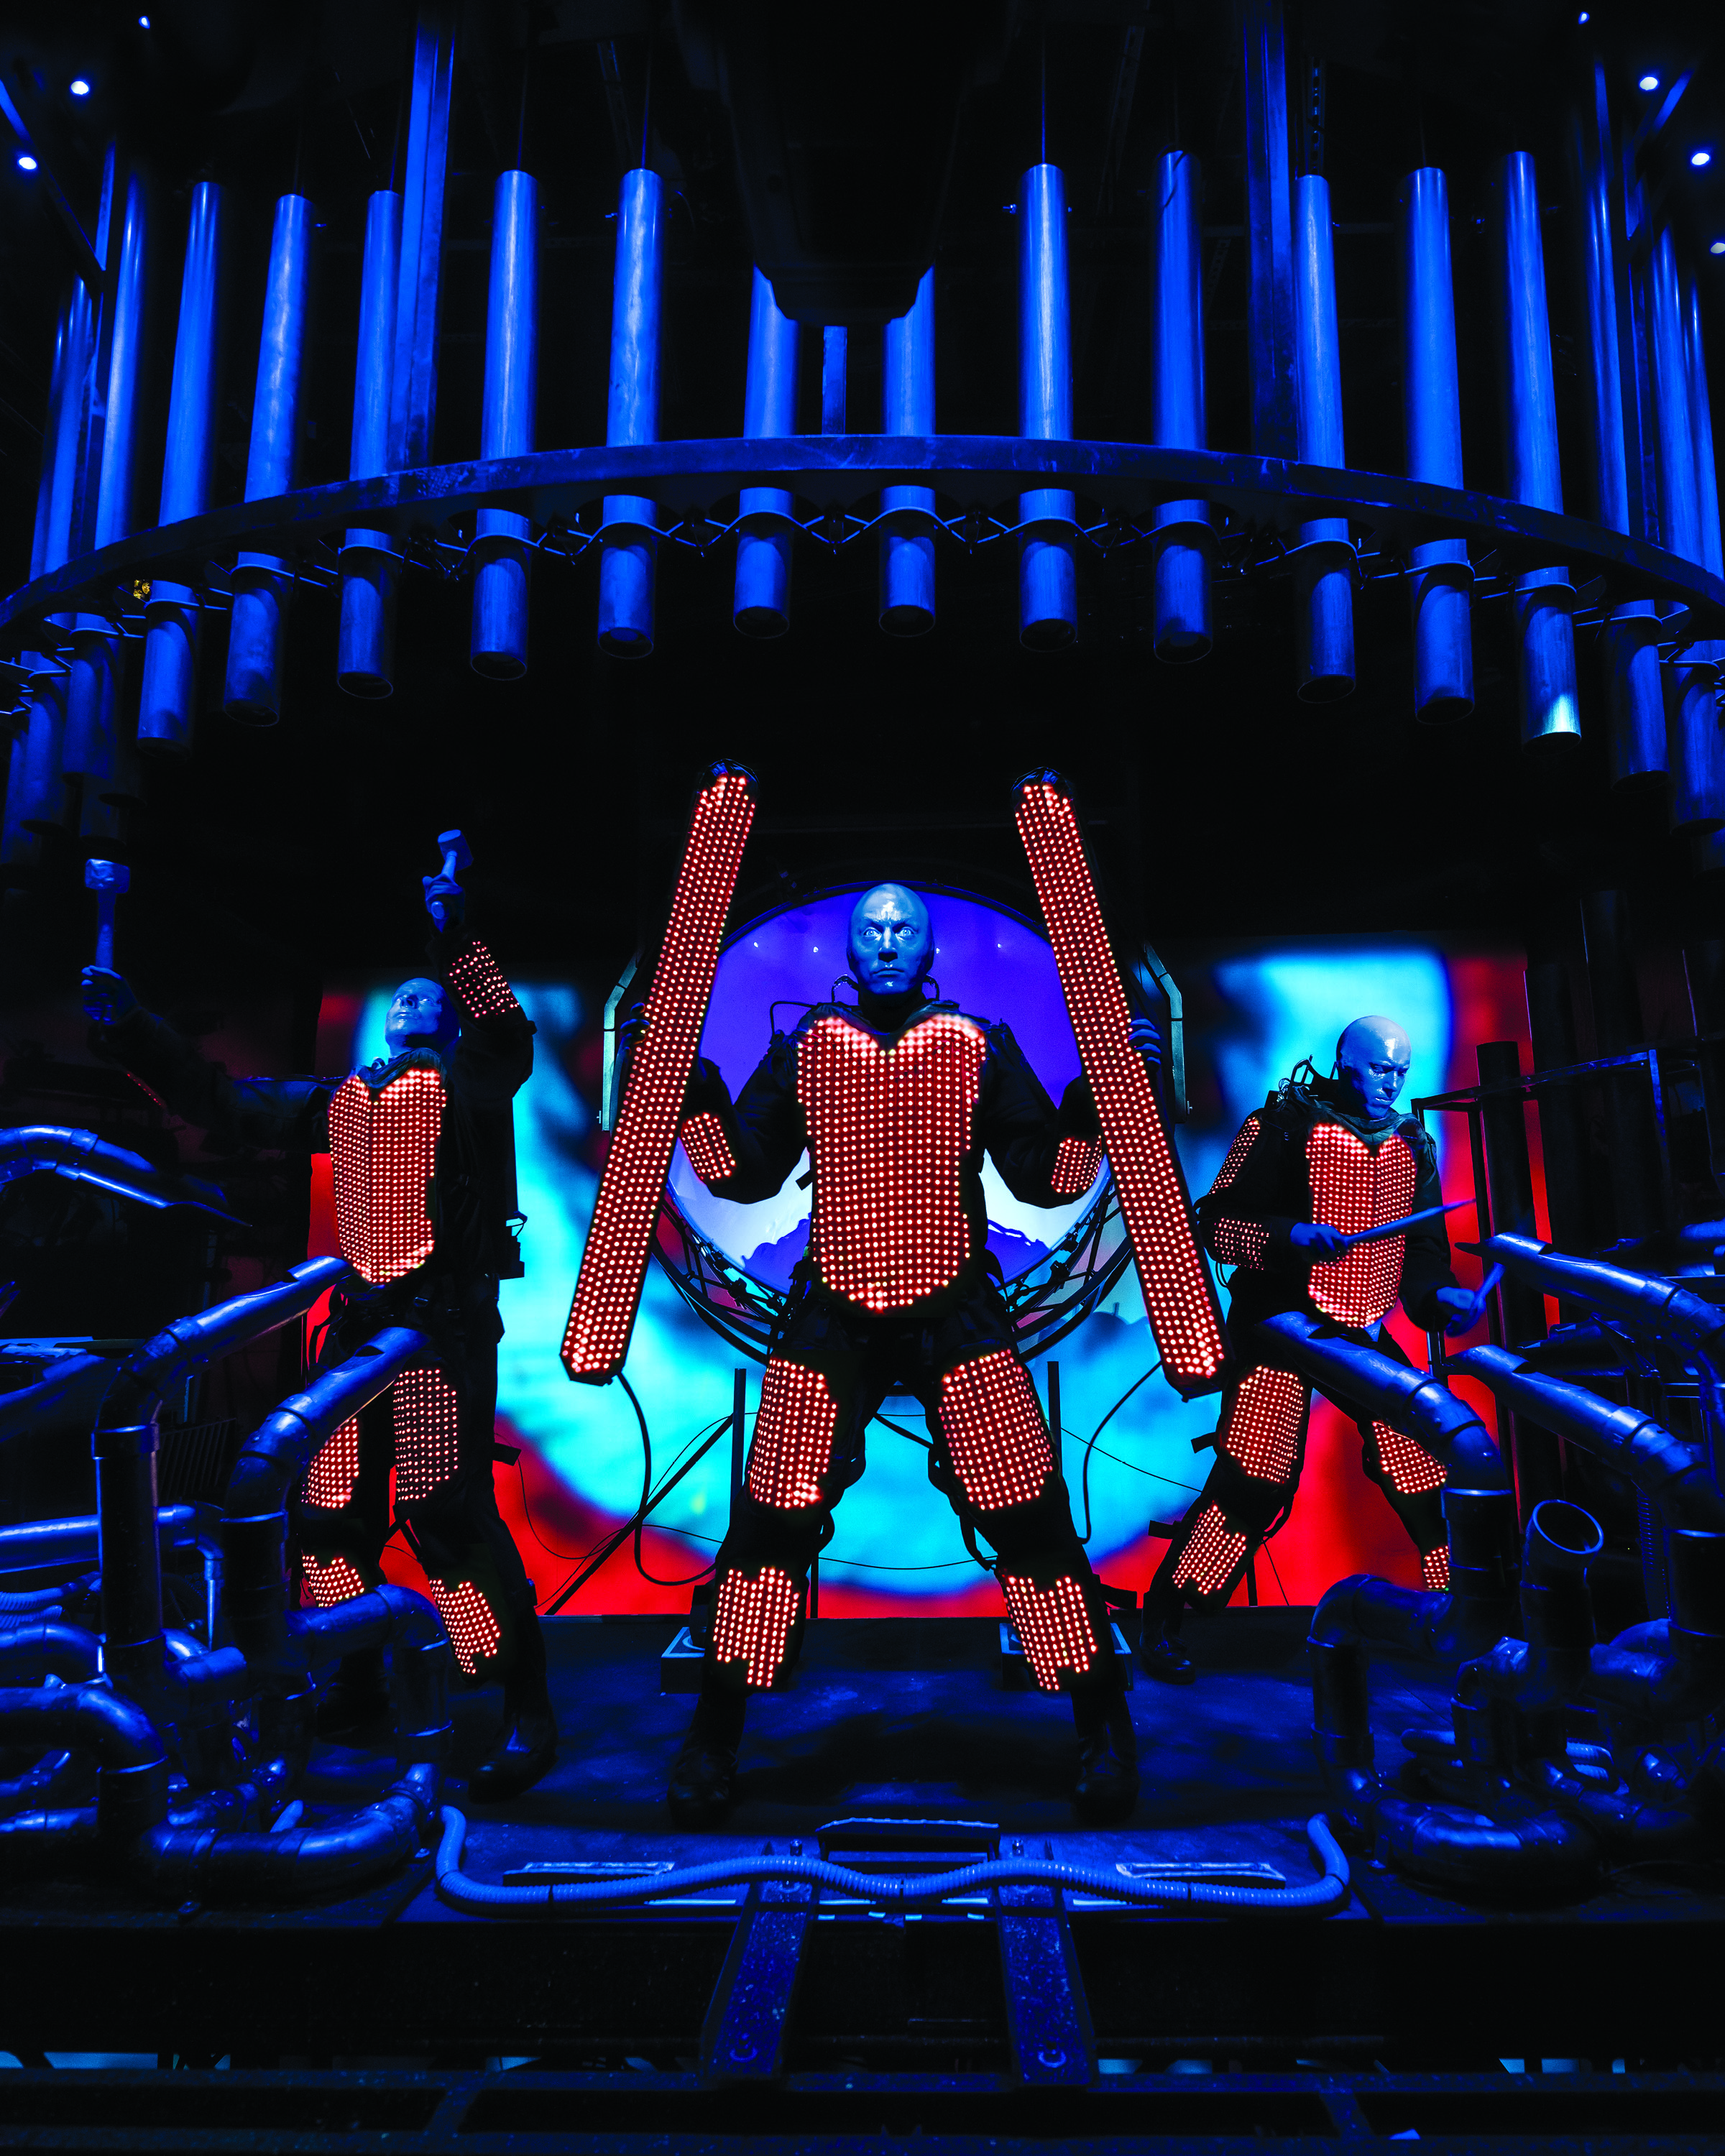 BlueMan_photo_LightSuits_8x10.jpg.jpg